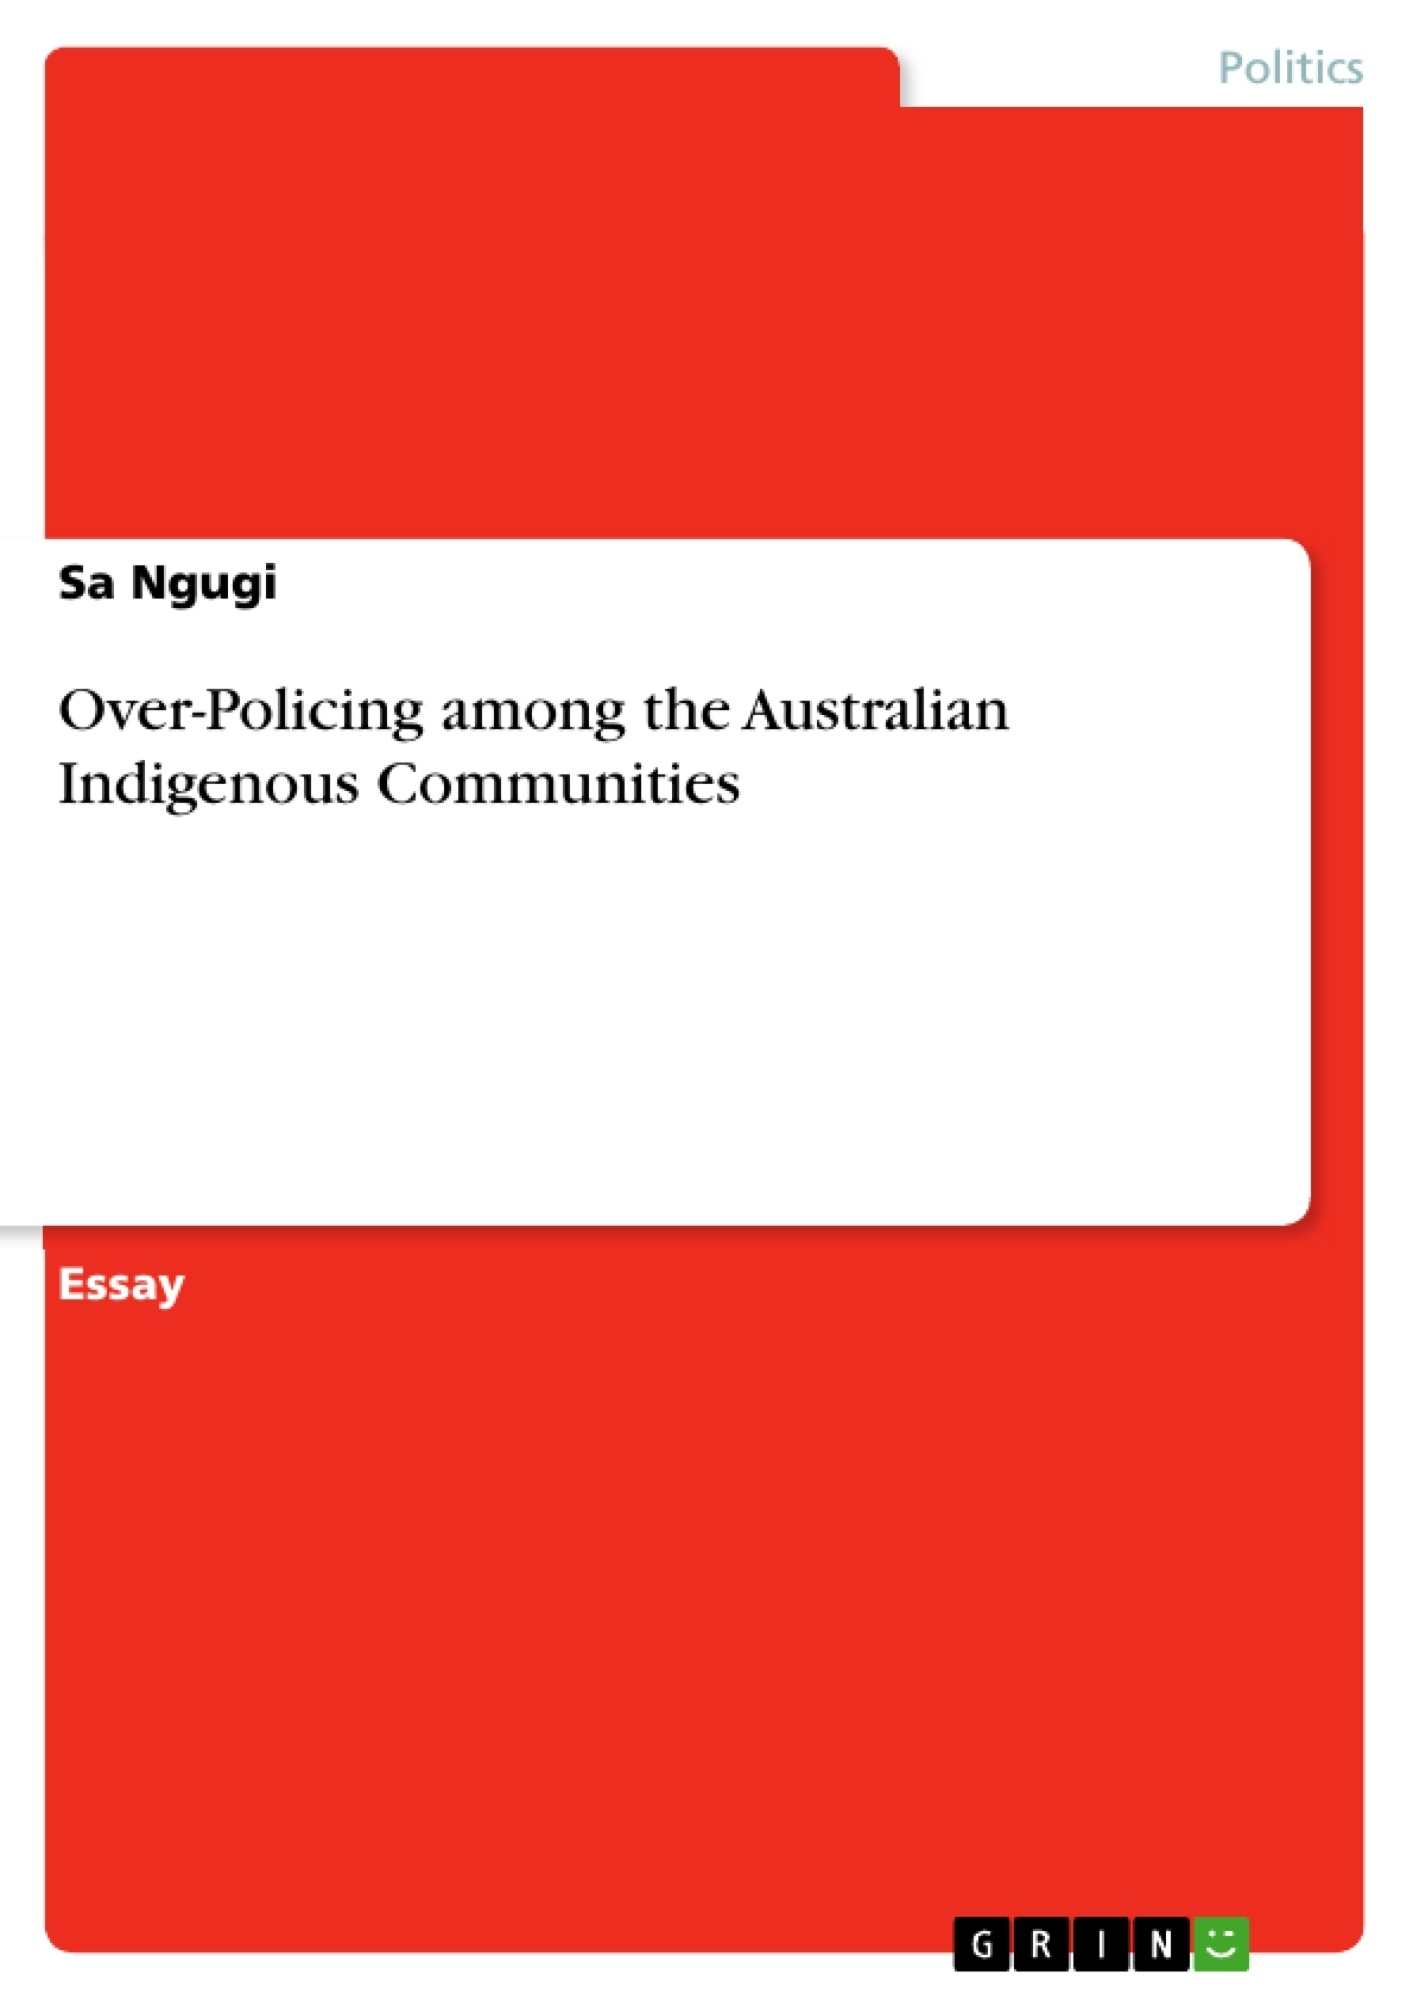 over policing among the n indigenous communities  upload your own papers earn money and win an iphone x